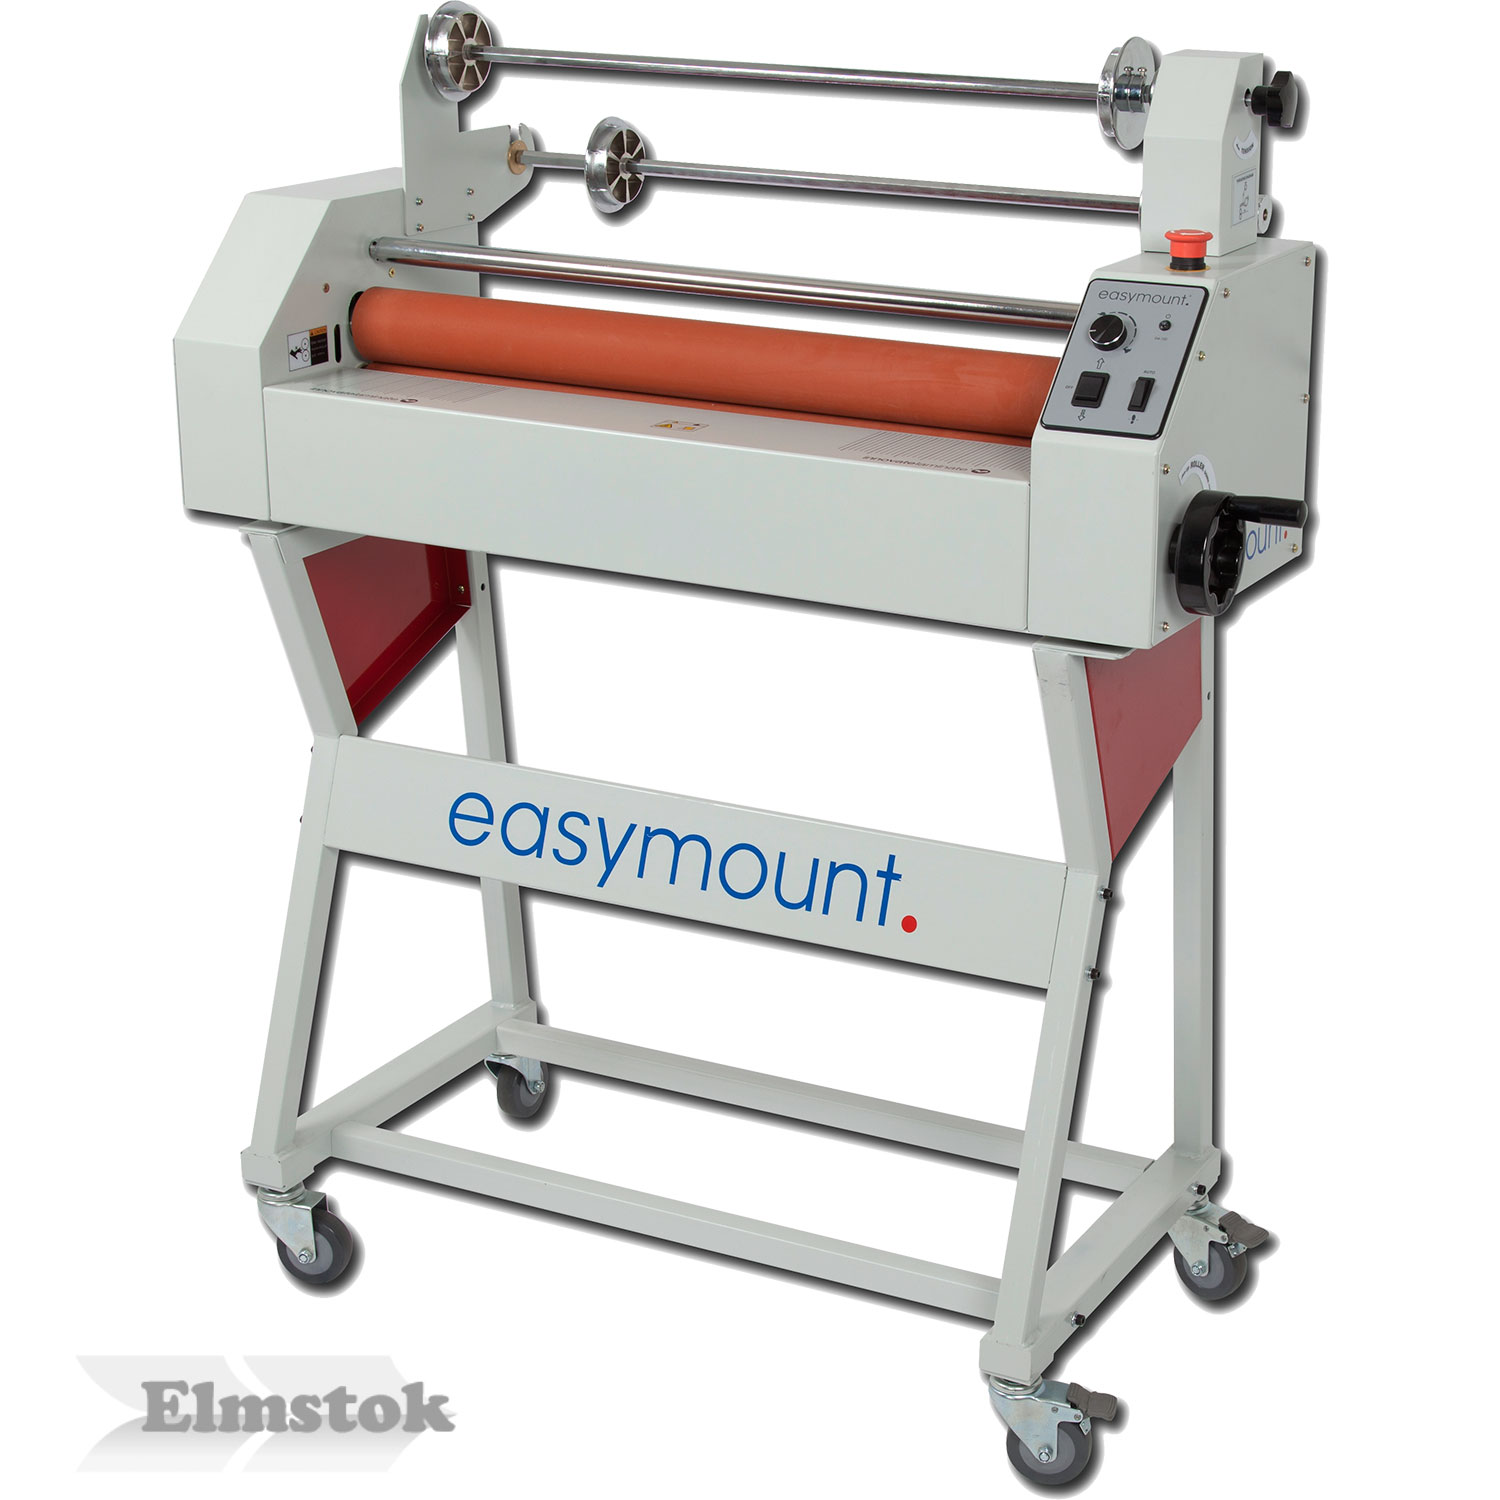 Easymount 720 Cold Sign Laminator & Mounting System